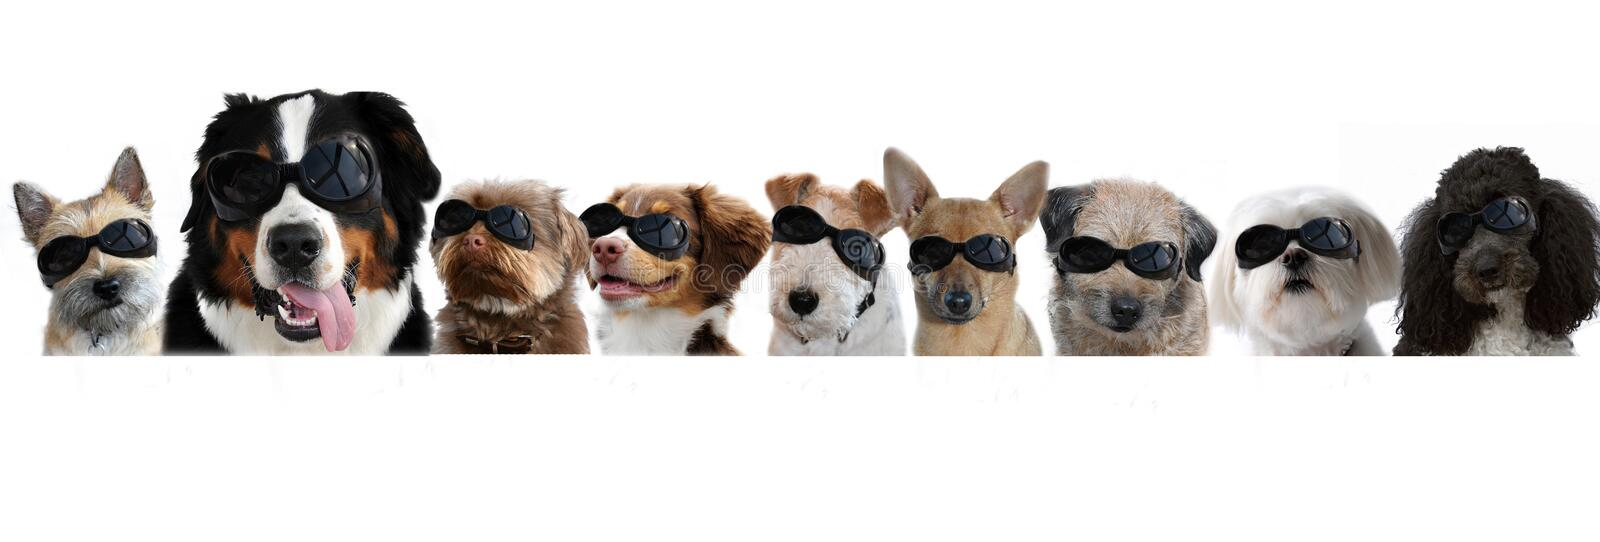 Group of dogs with goggles stock images